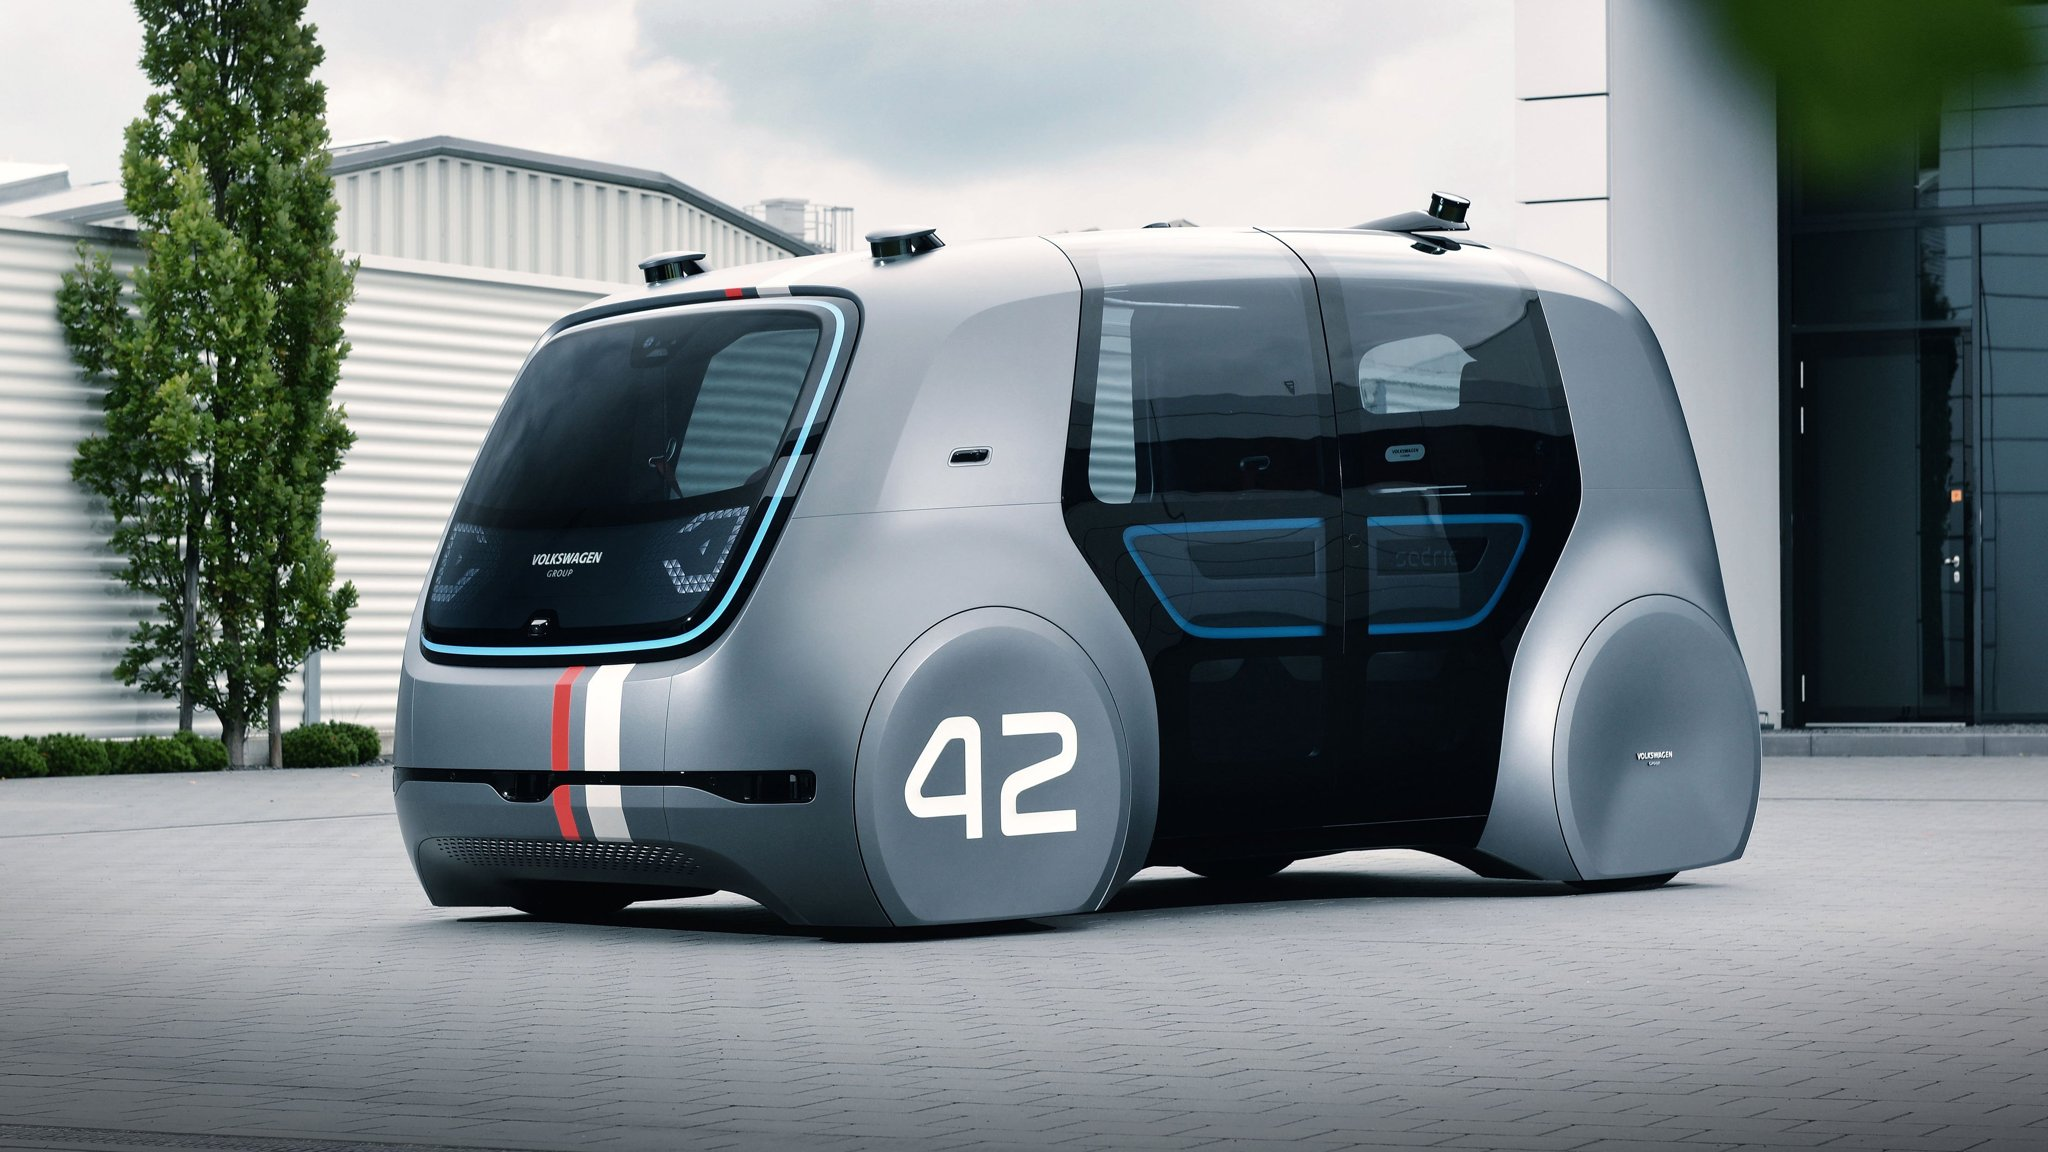 Volkswagen joins forces with Silicon Valley self-driving start-up